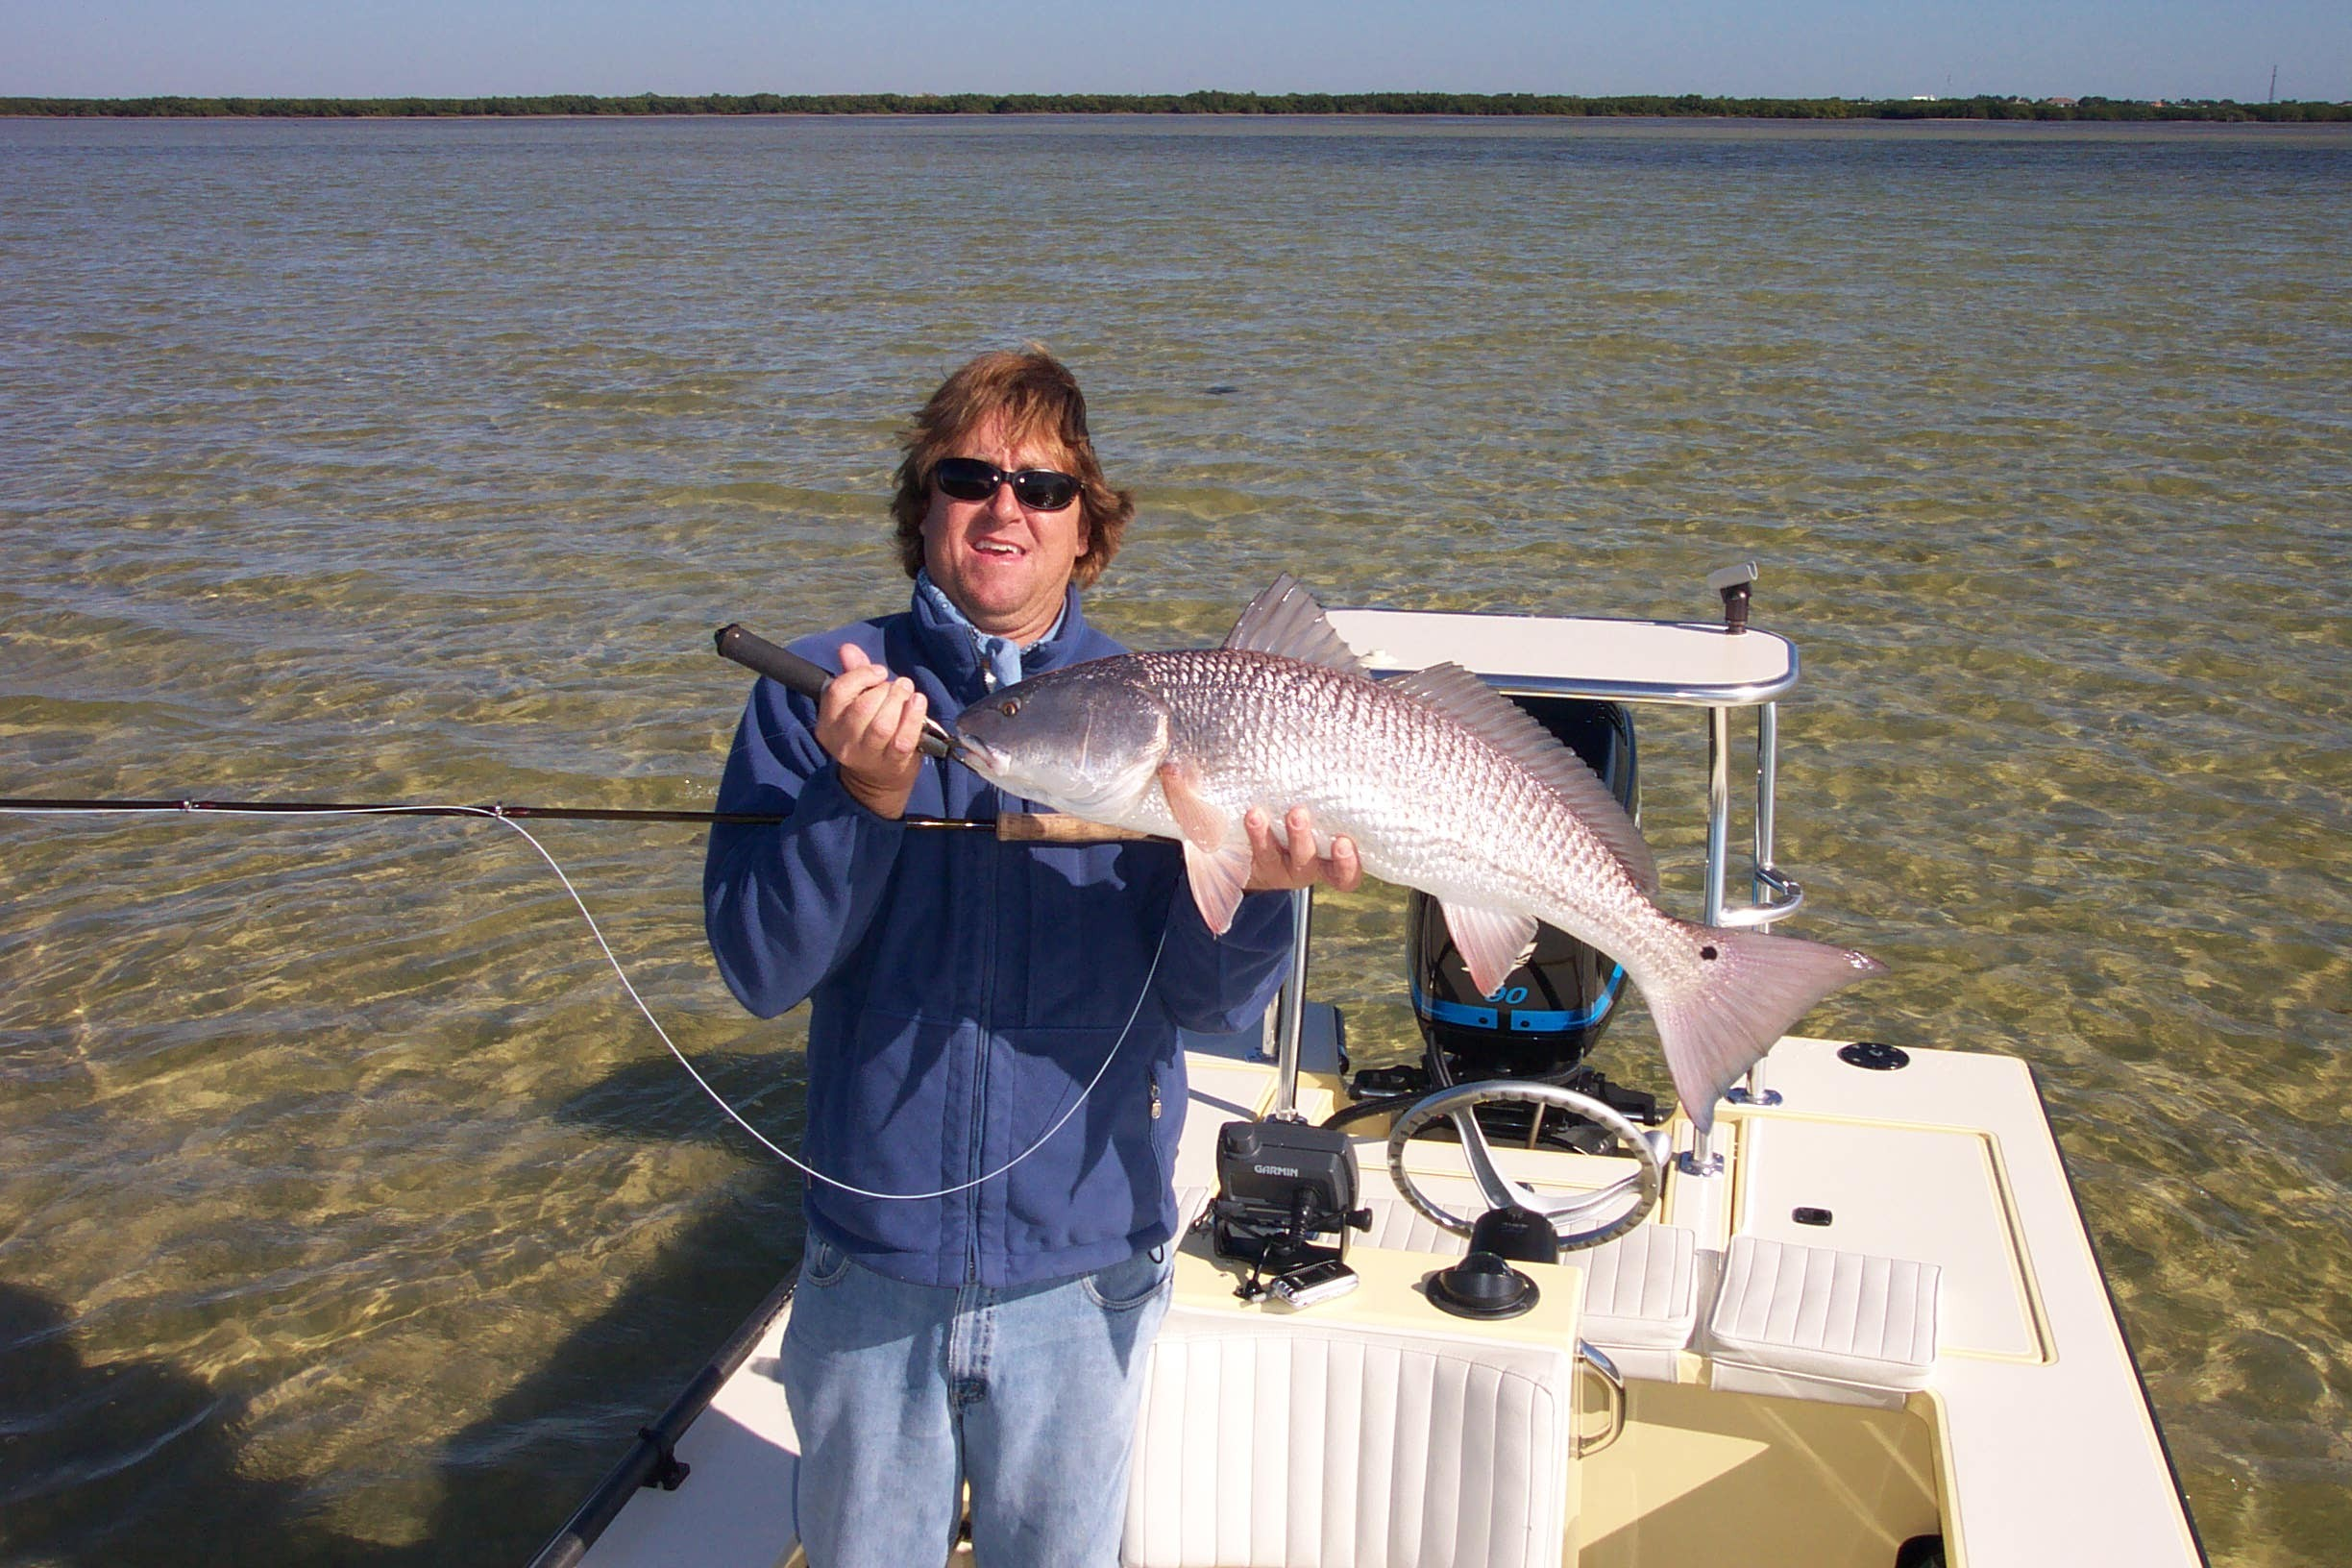 dan with nice redfish caught on the fly with capt wayne simmons fly fishing